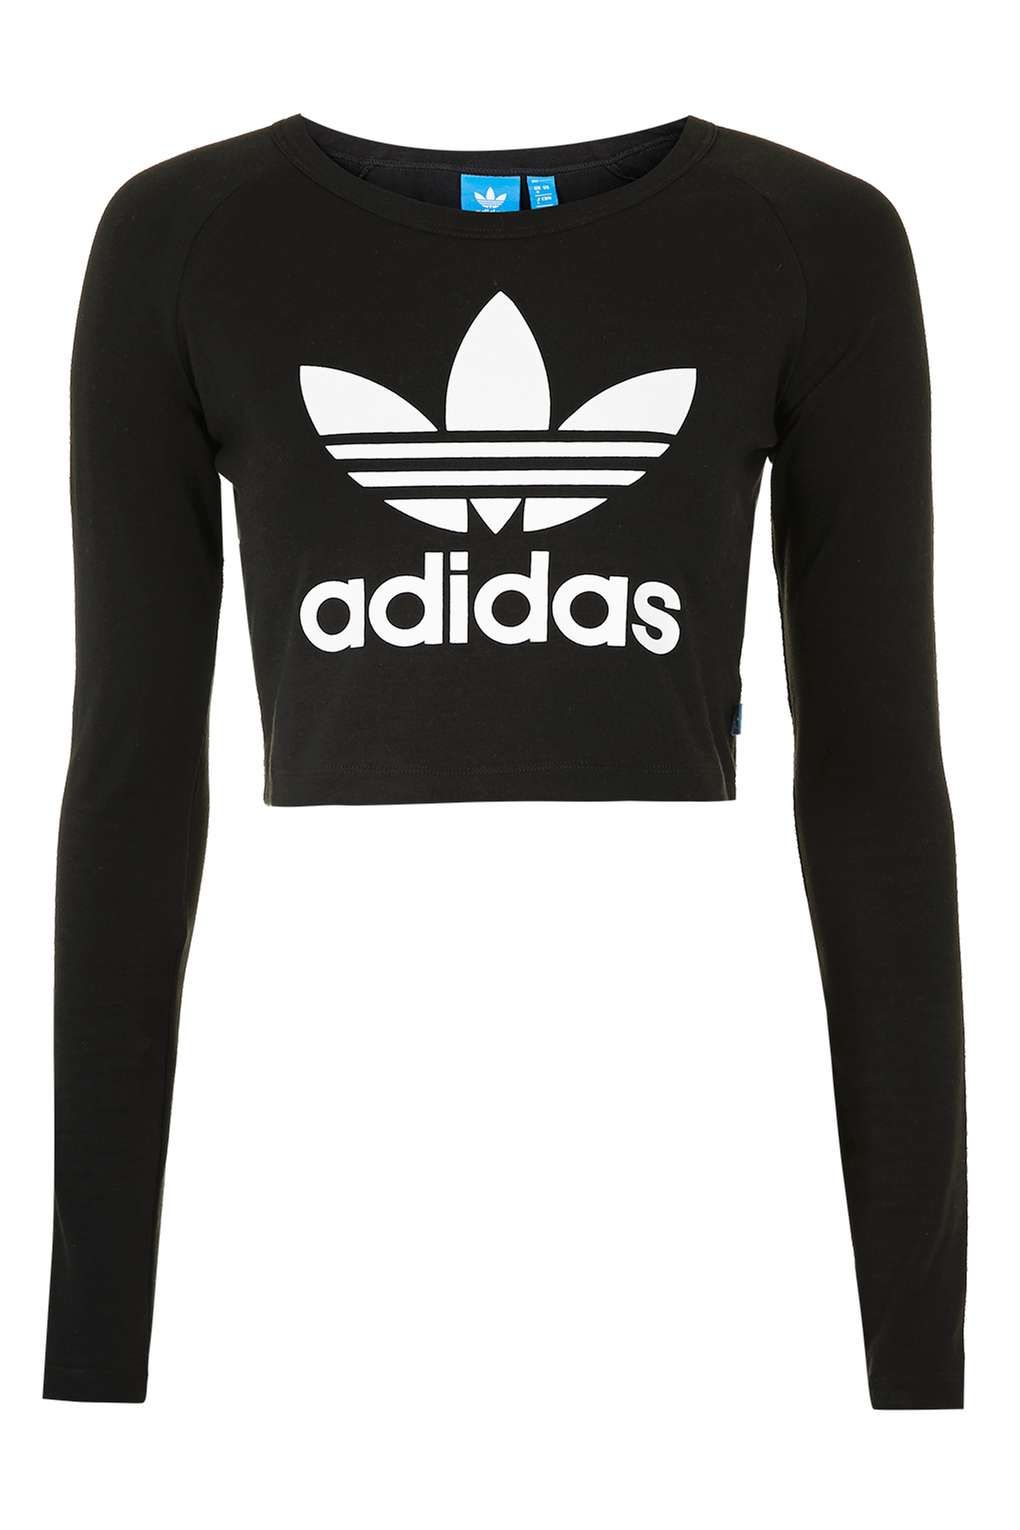 Adidas crop t shirt cheap >off63% più grande catalogo sconti